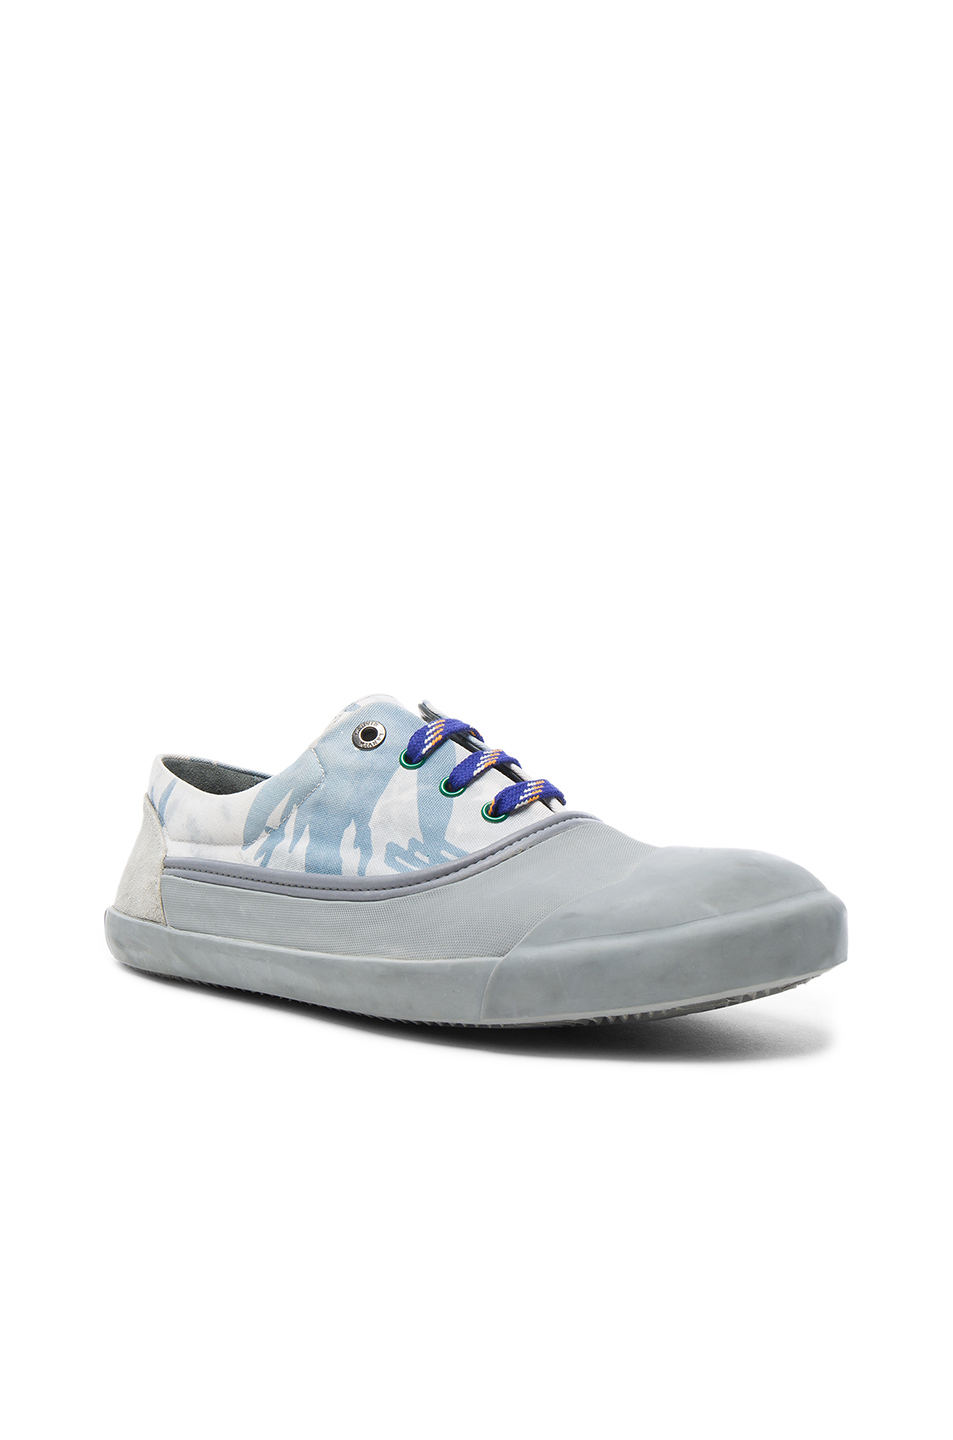 Photo of Lanvin Printed Canvas Low Top Sneakers in Blue,Gray,Abstract - shop Lanvin menswear